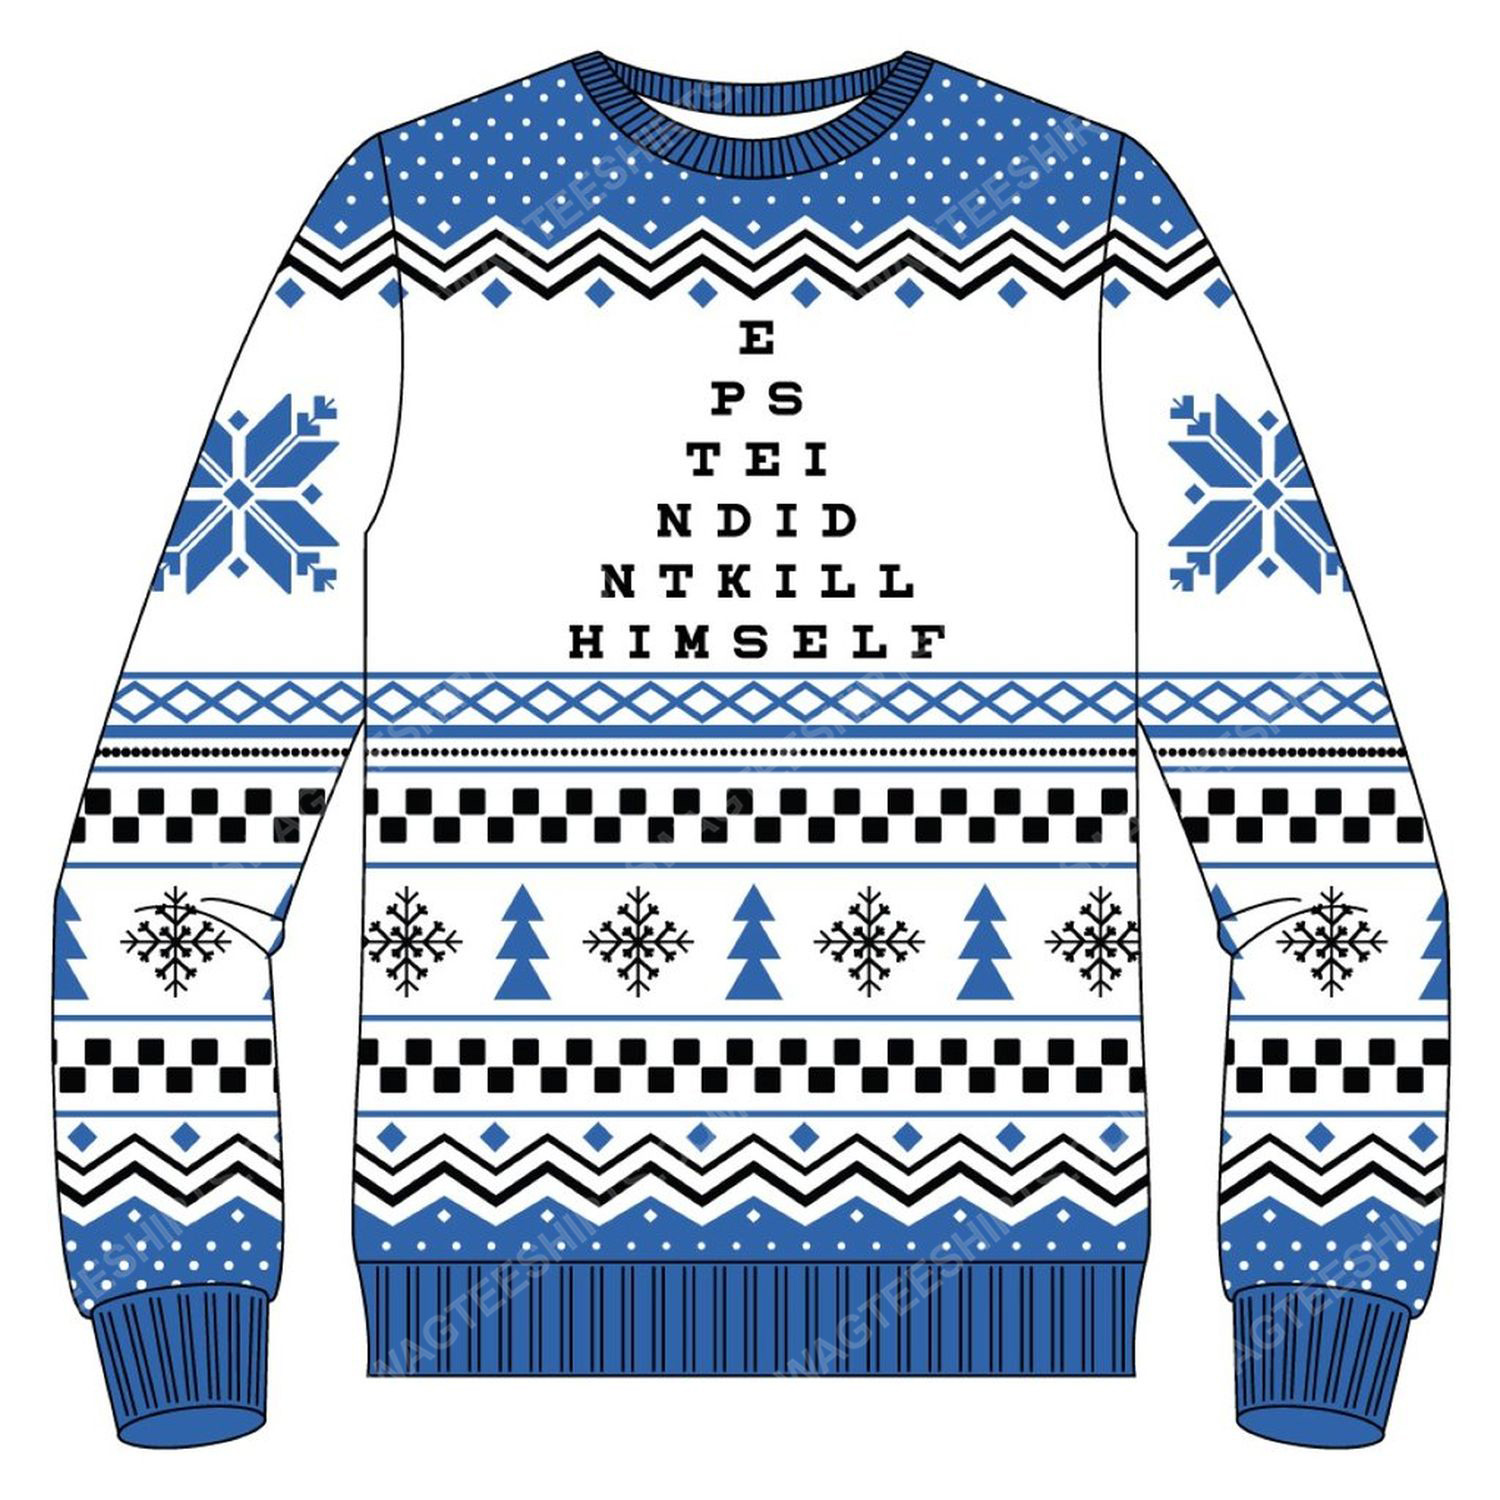 It's beginning to look a lot like epstein didn't kill himself ugly christmas sweater 5